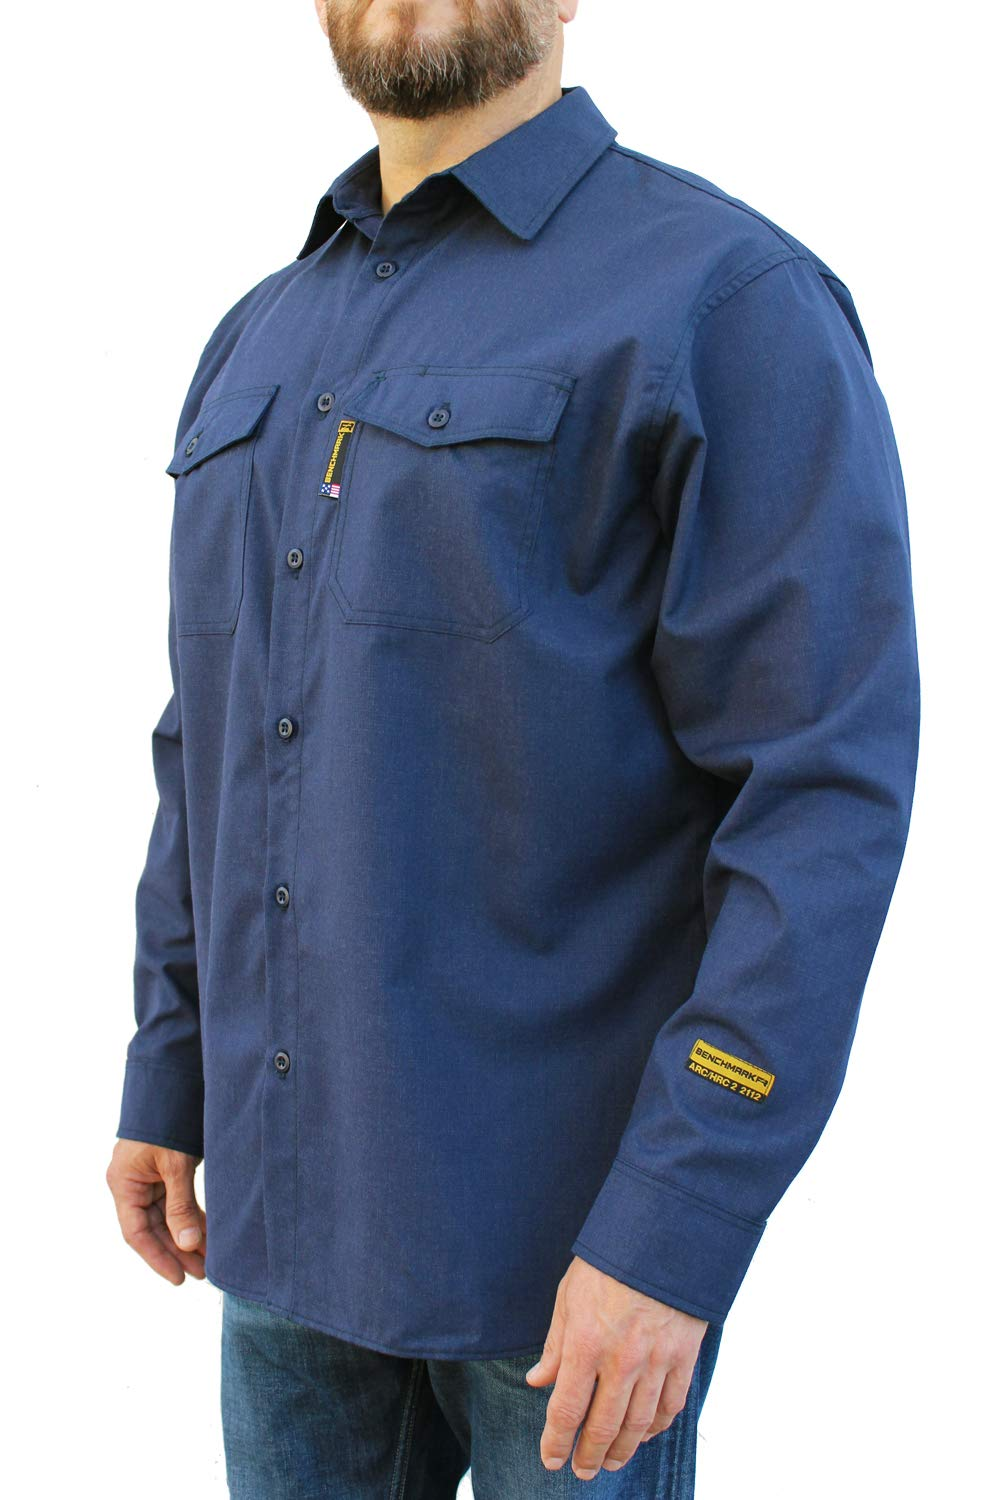 Benchmark FR Silver Bullet, 5.1 oz Ultra Lightweight FR Shirt, NPFA 2112 & CAT 2, Moisture Wicking, Men's FRC with 9 Cal rating, Made in USA, Advanced FR Materials, Navy, Large by Benchmark FR (Image #4)